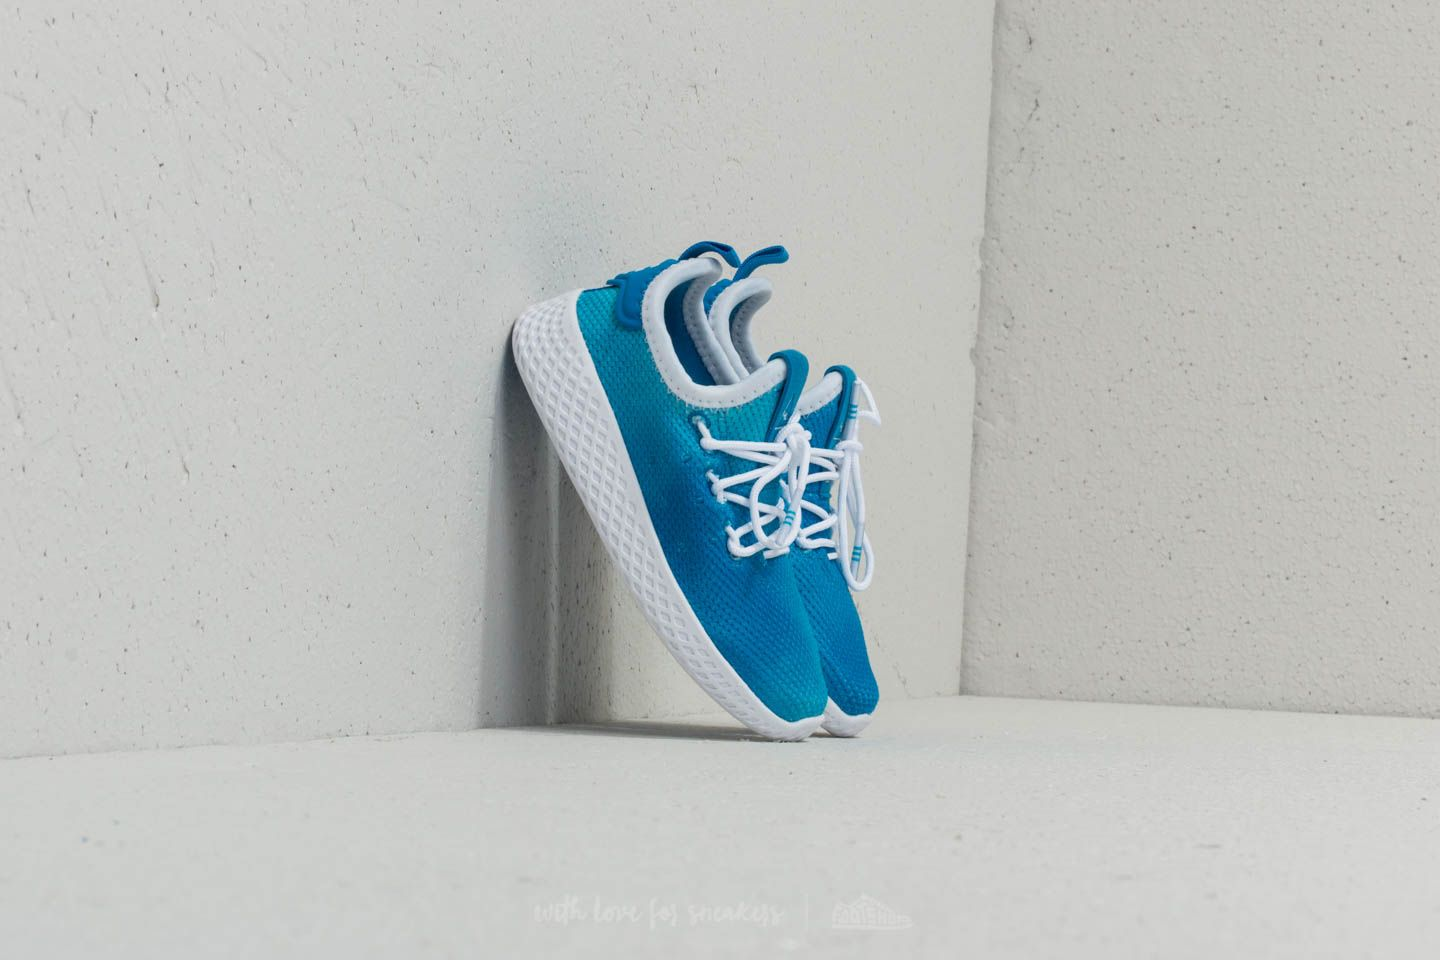 Zapatillas de niño adidas x Pharrell Williams Tennis HU I Bright Blue/ Ftw White/ Ftw White